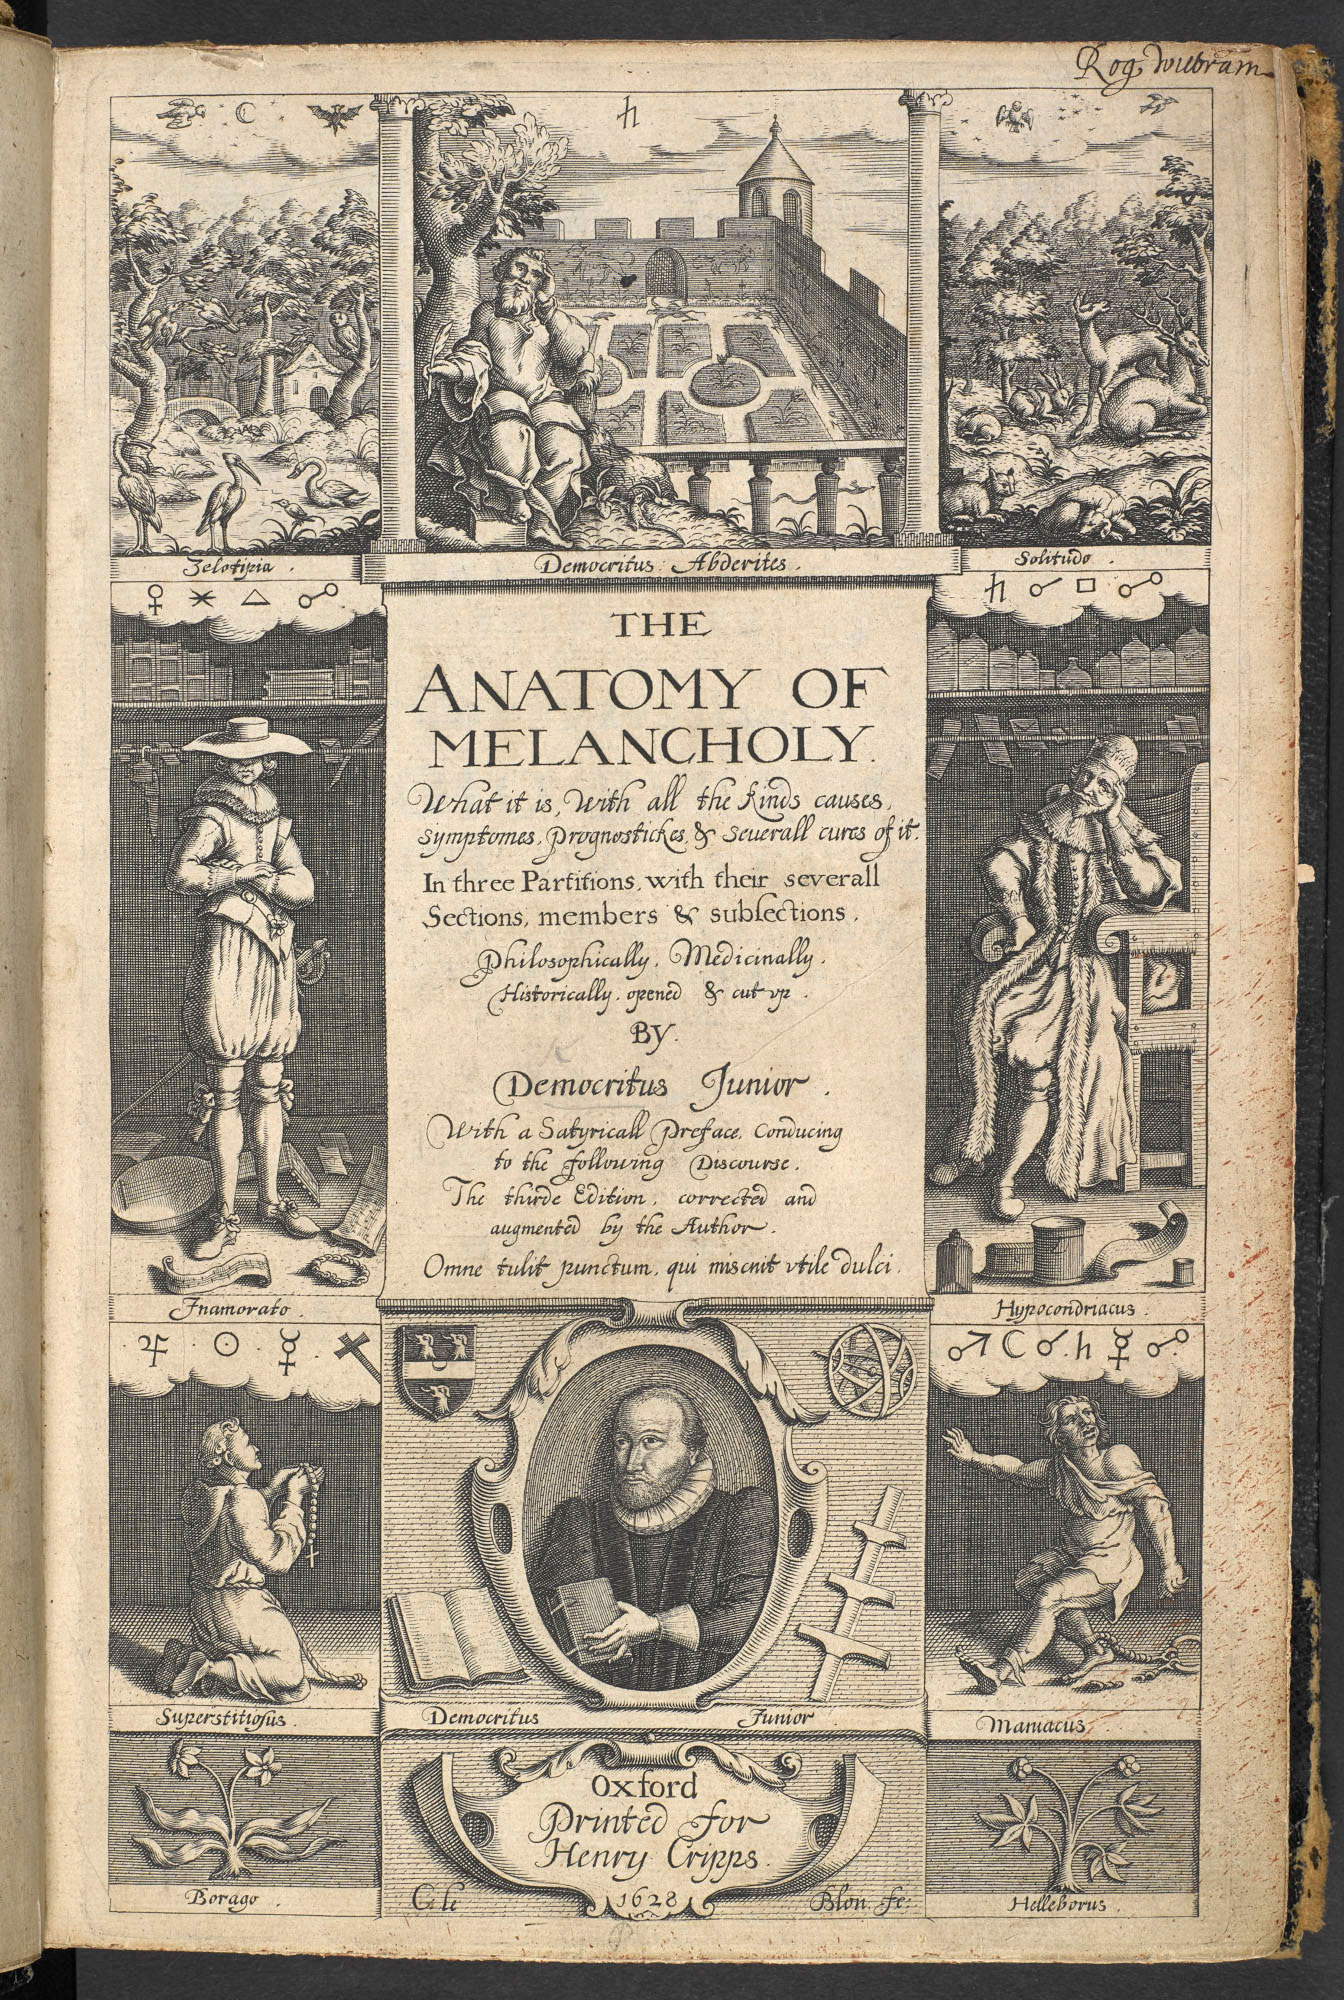 the influence of deception on relationships and conflict in shakespeares play much ado about nothing William shakespeare (1564-1616) wrote much ado about nothing in late 1598, right in the middle of his career while the dialogue, characters and events might at first seem archaic to us today, don.